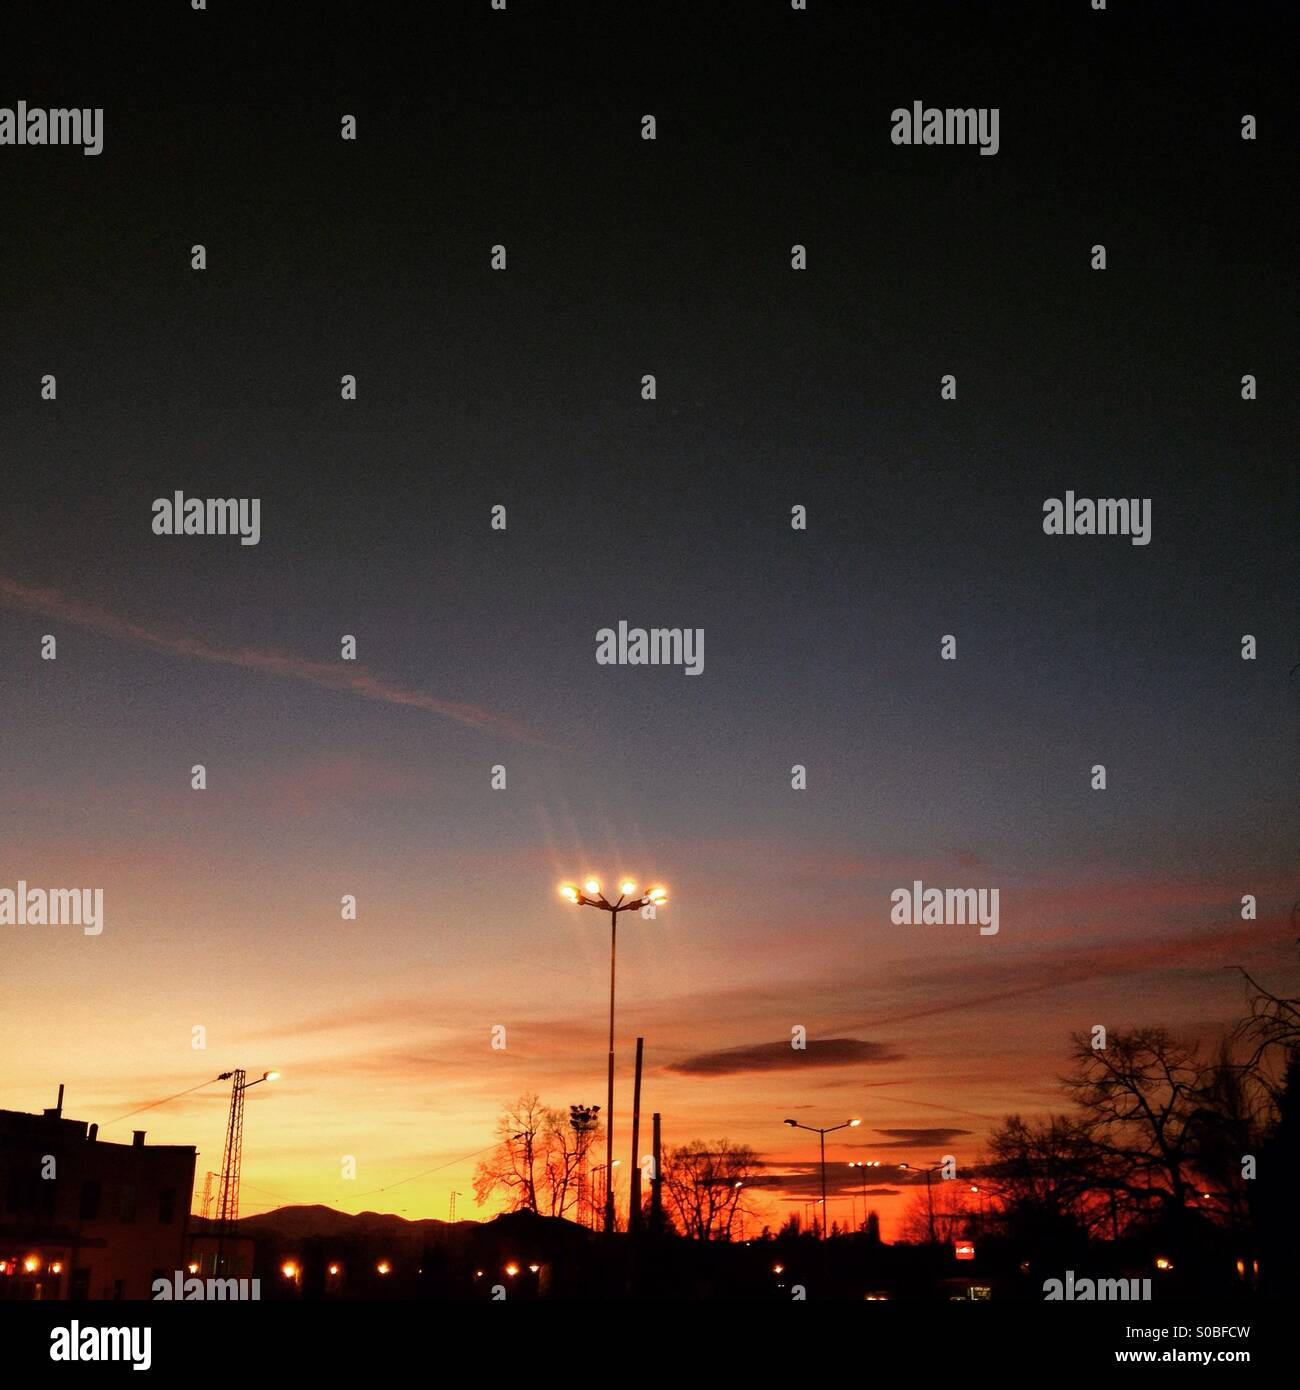 Evening at Kazanlak, Bulgarian town of the roses. - Stock Image